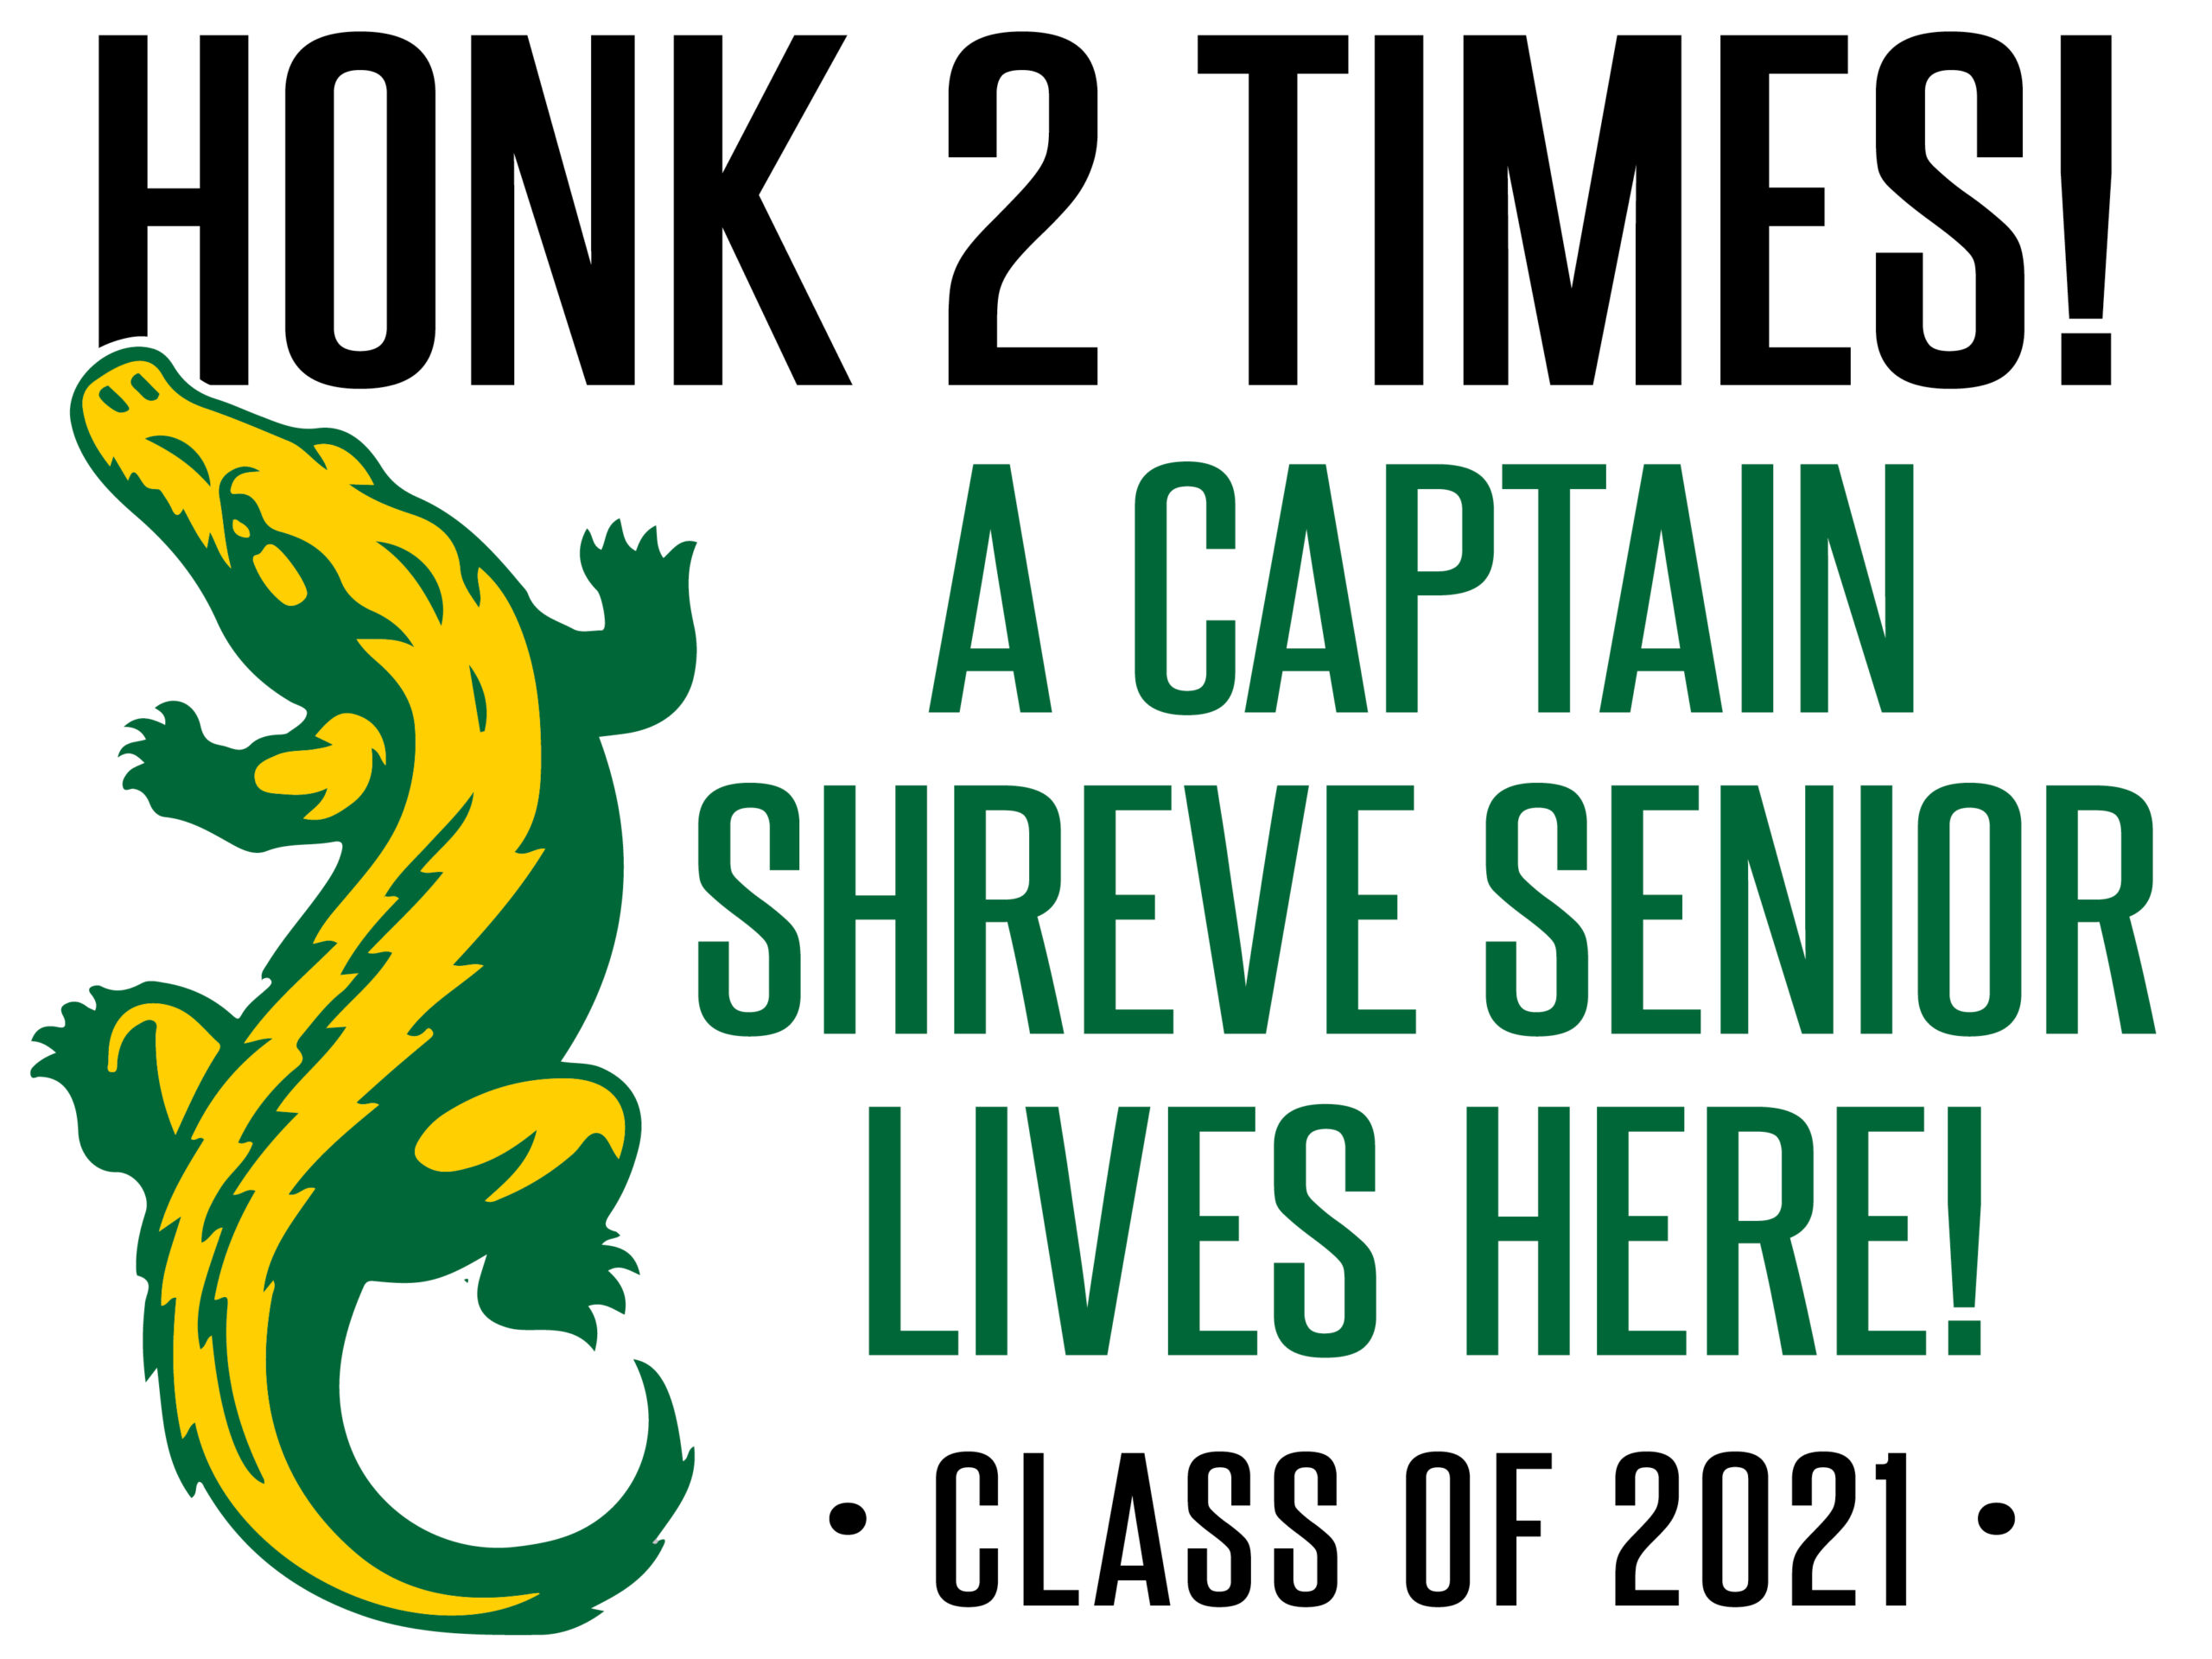 Captain Shreve Senior Yard Signs c/o 2021